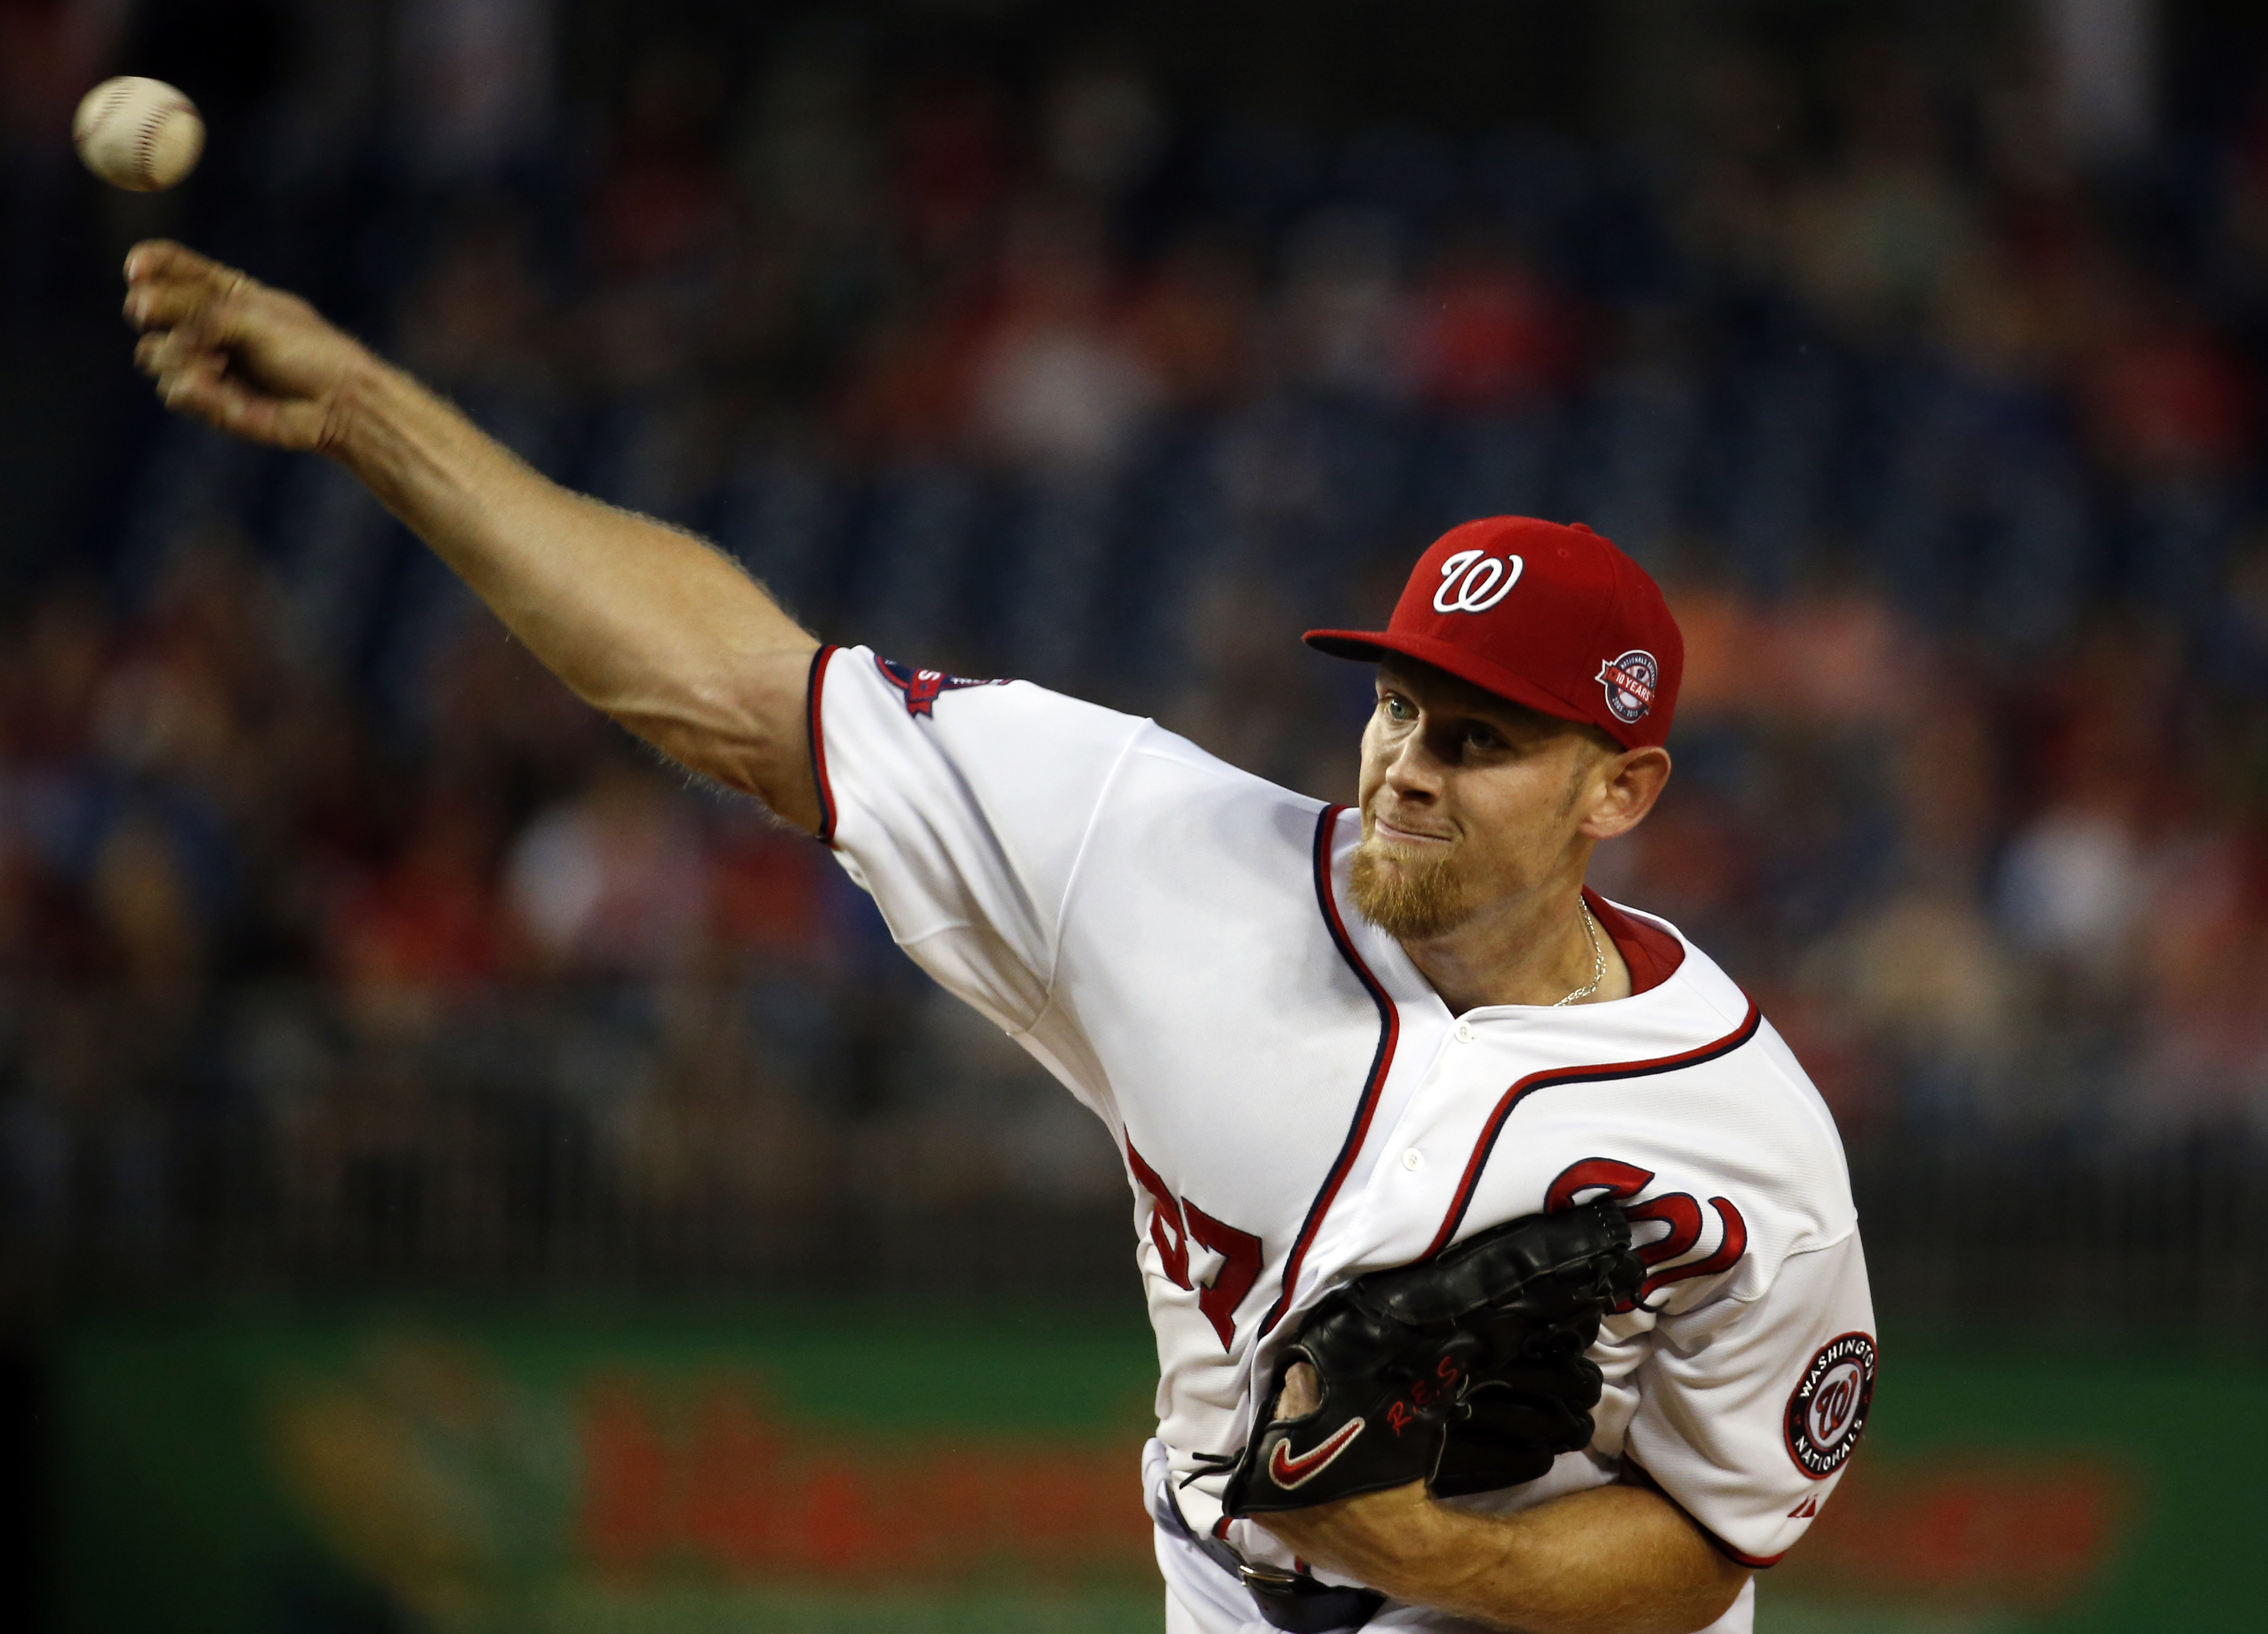 Washington Nationals starting pitcher Stephen Strasburg (37) throws during the first inning of a baseball game against the Miami Marlins at Nationals Park, Tuesday, May 5, 2015, in Washington. (AP Photo/Alex Brandon)